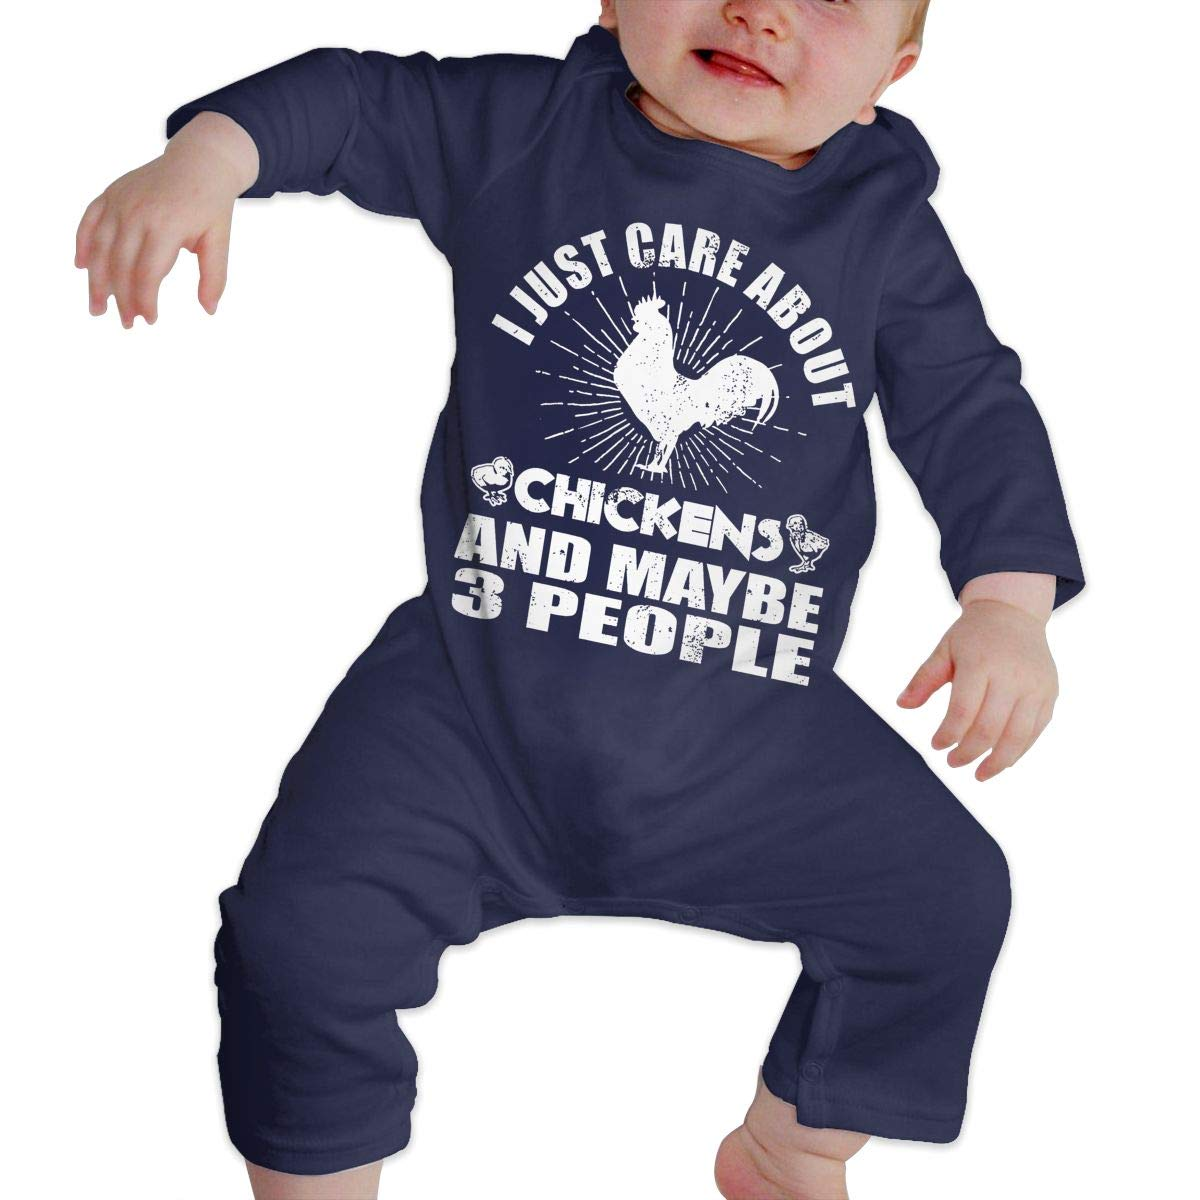 KAYERDELLE I Just Care About Chickens and 3 People Long Sleeve Unisex Baby Onesies for 6-24 Months Boys /& Girls